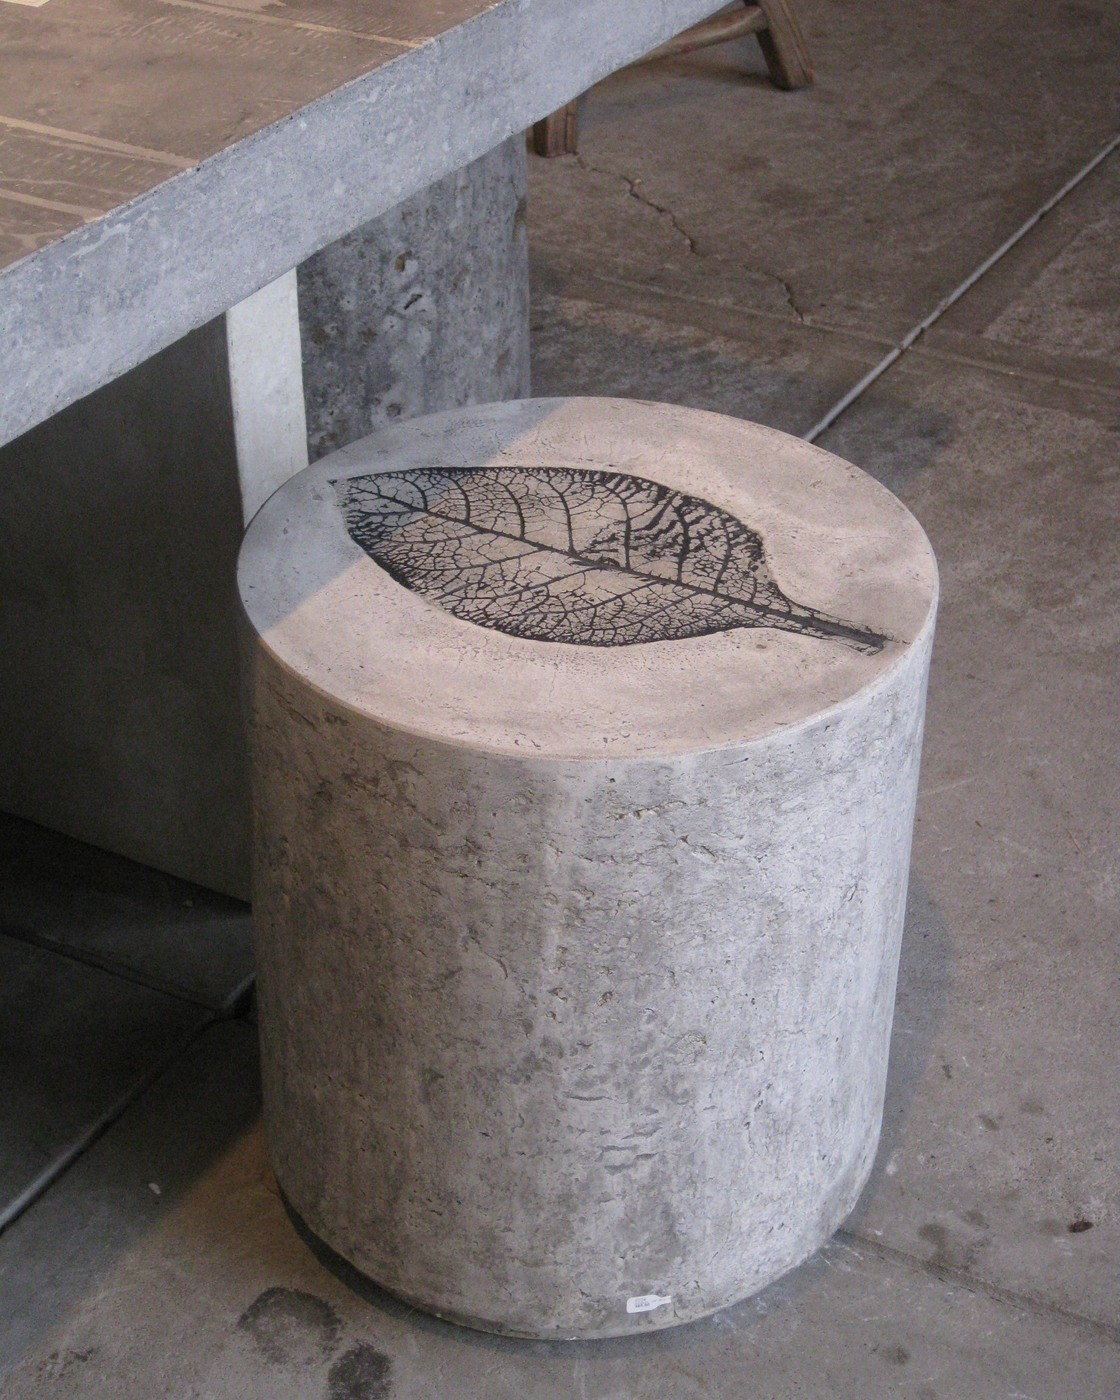 white Concrete stool with black tobacco leaf impression